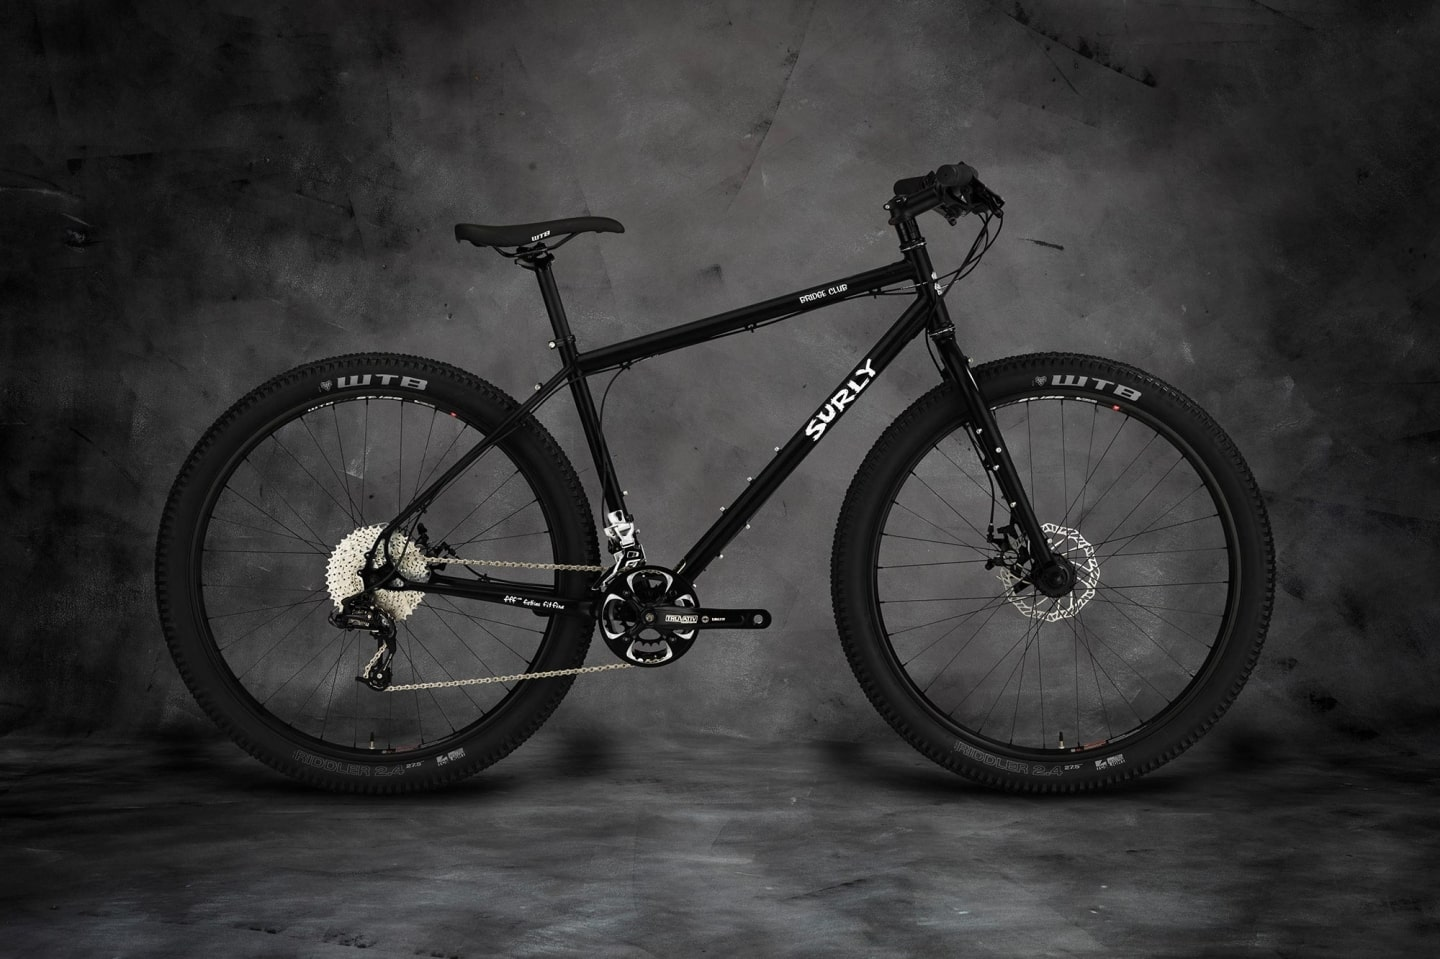 Bridge Club bike - Dark Black